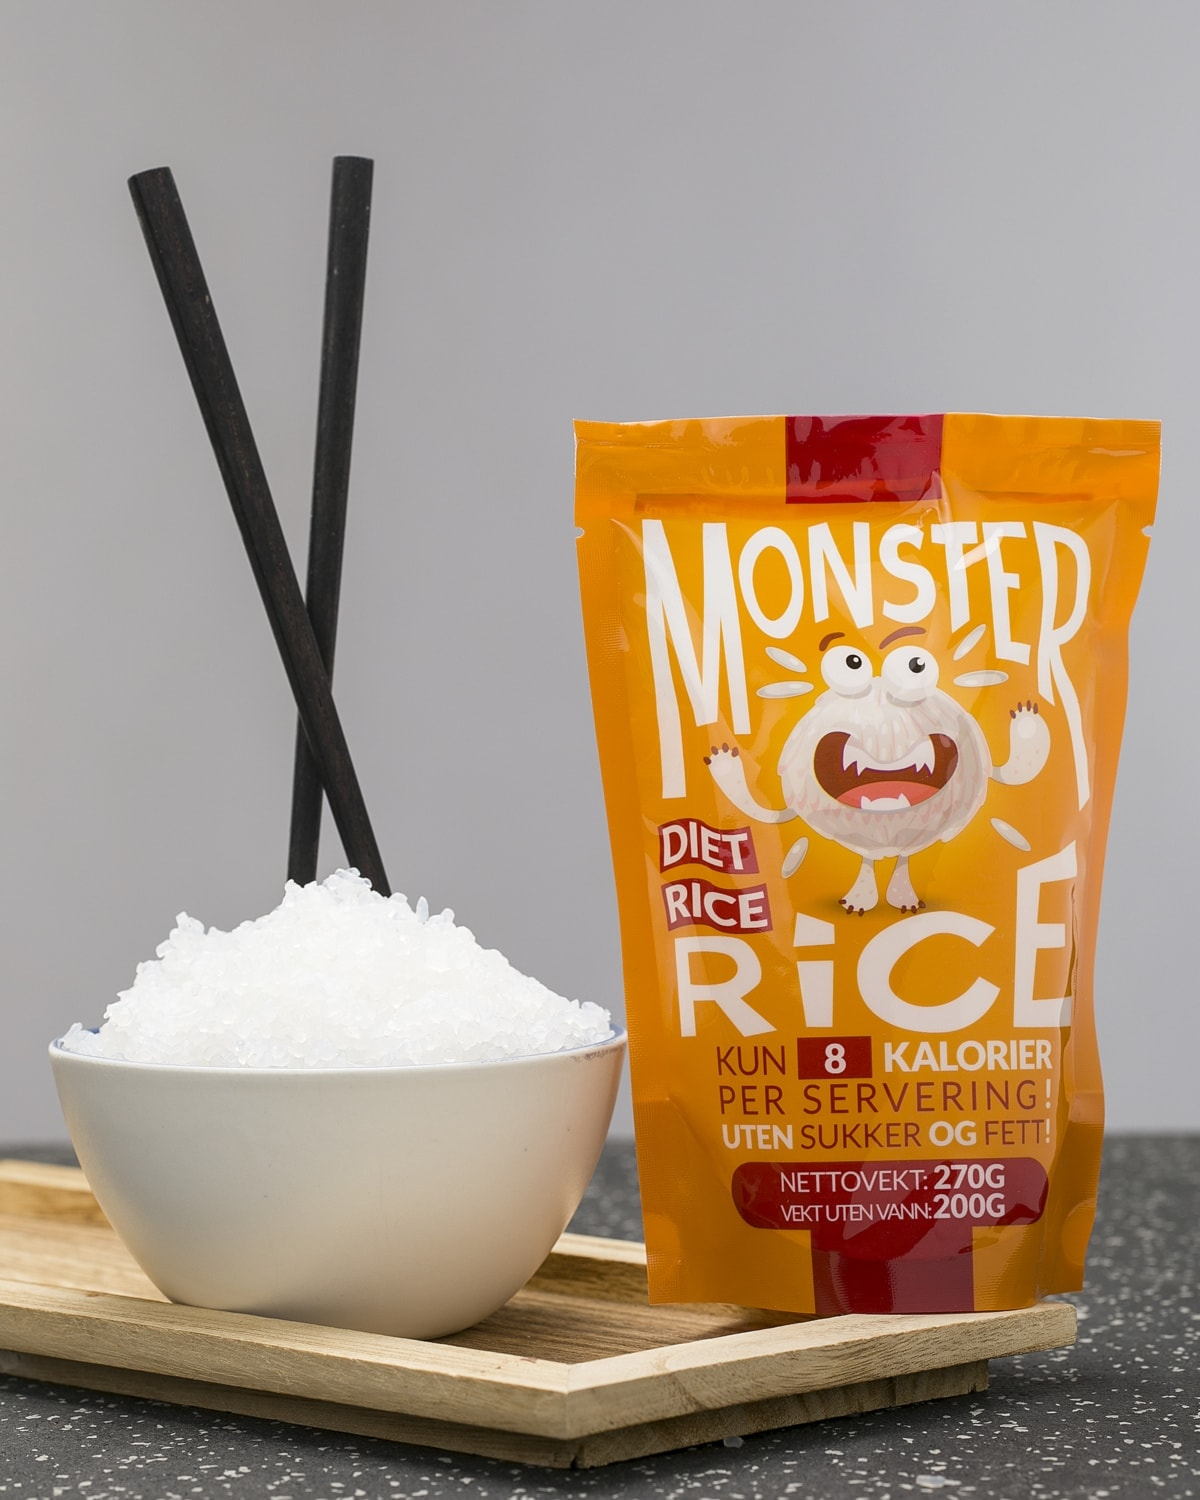 Monster Diet Miracle Rice